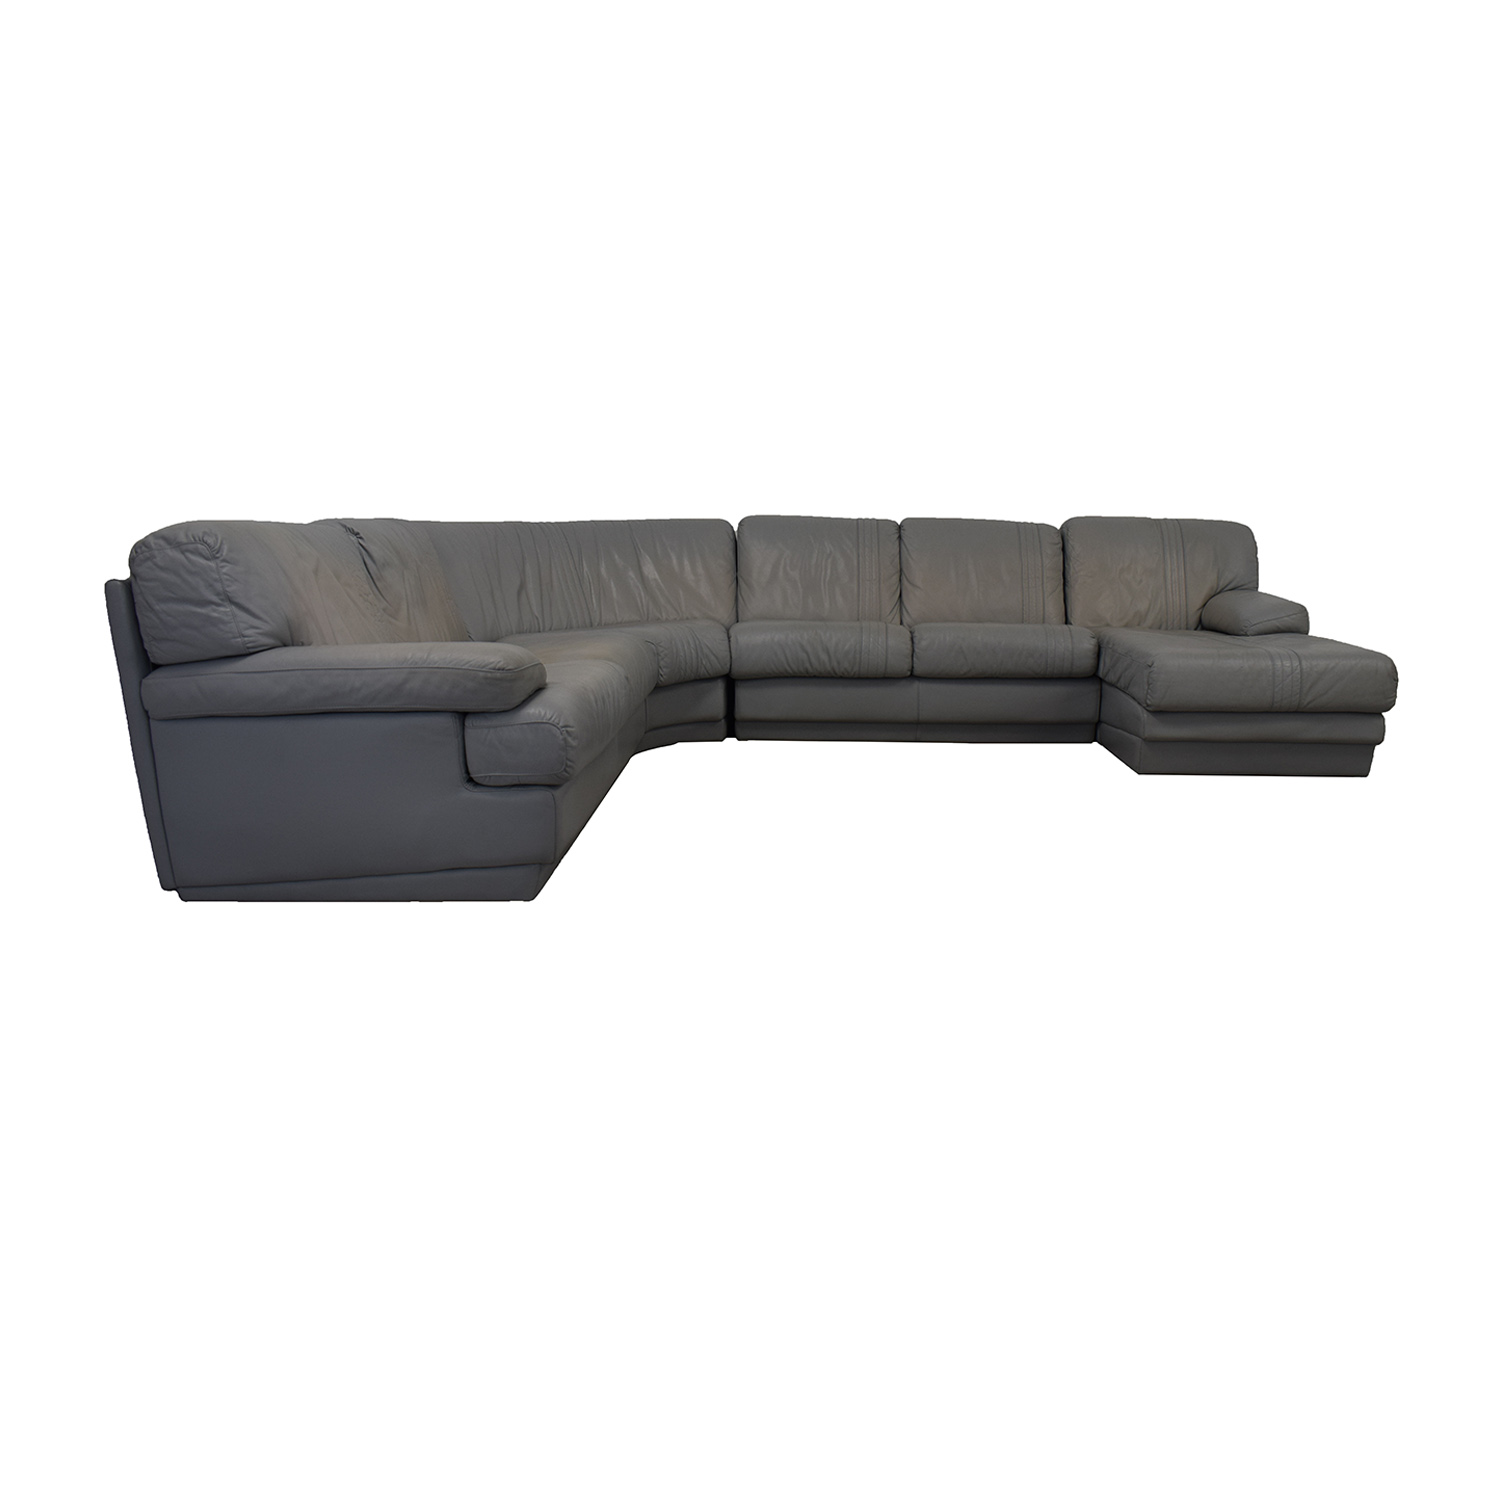 House of Grossman Grey L-Shaped Chaise Sectional / Sectionals